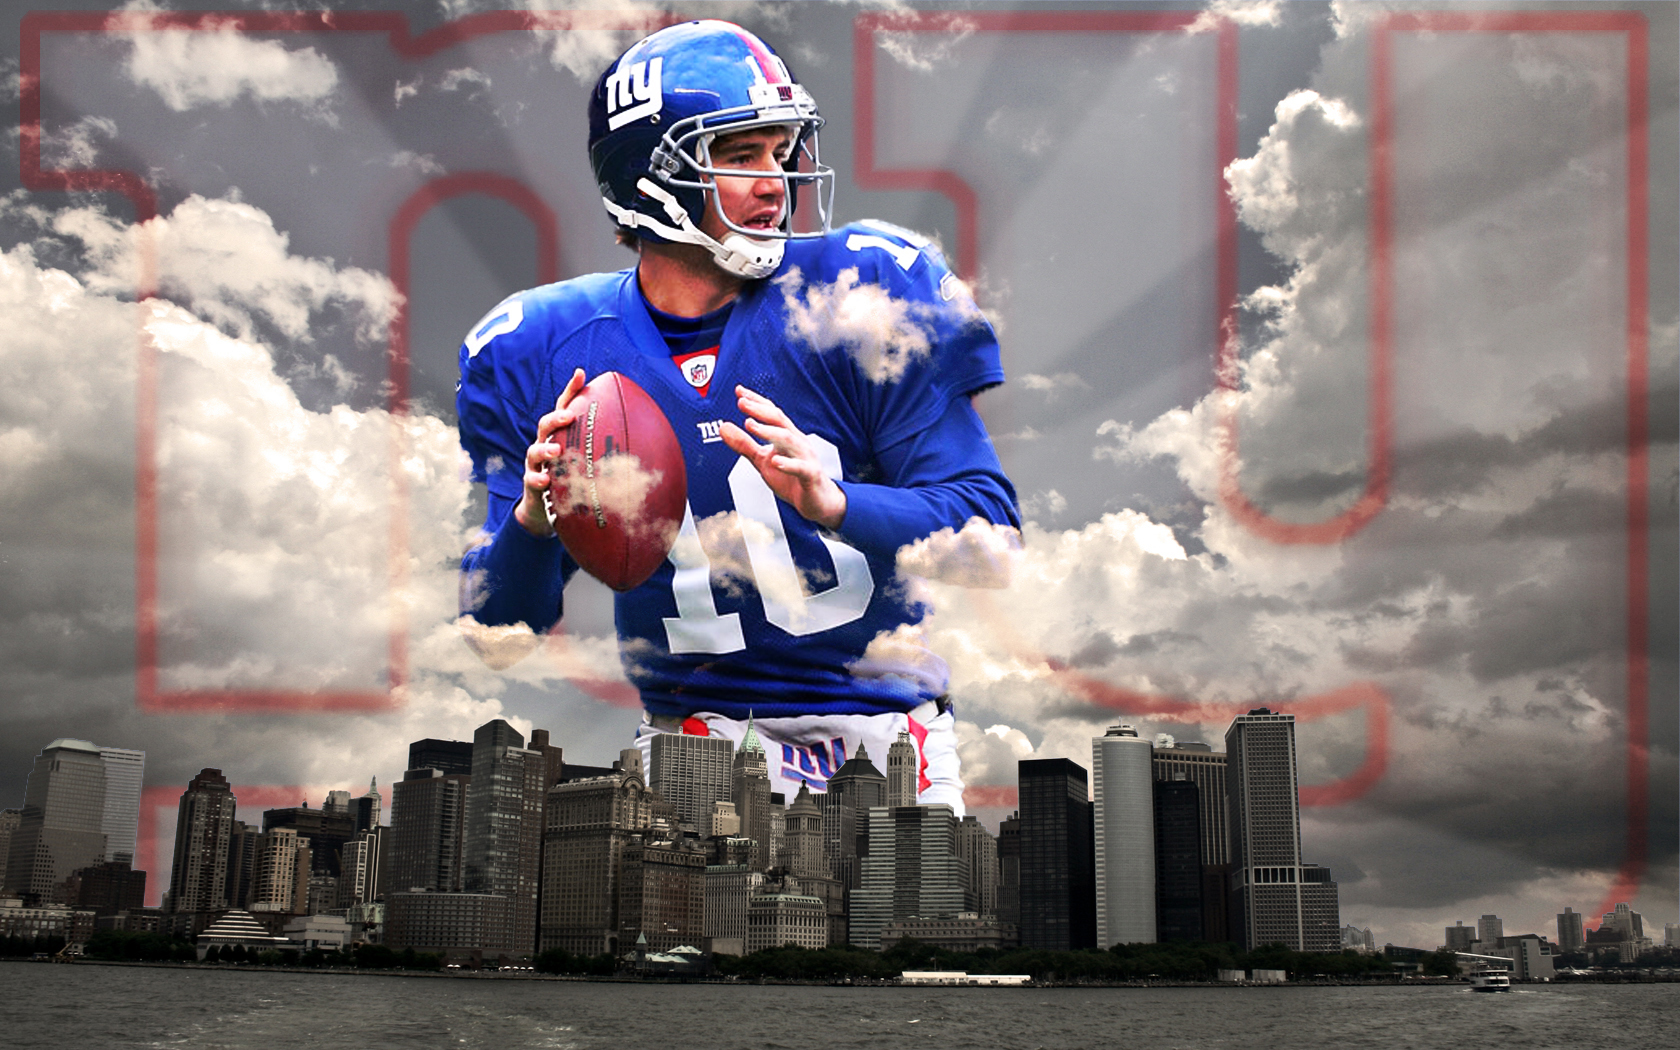 Shop New York Giants Merchandise and Giants Apparel at the official fan shop of the NY Giants Buy the latest Giants Gear featuring New York Giants Jerseys TShirts